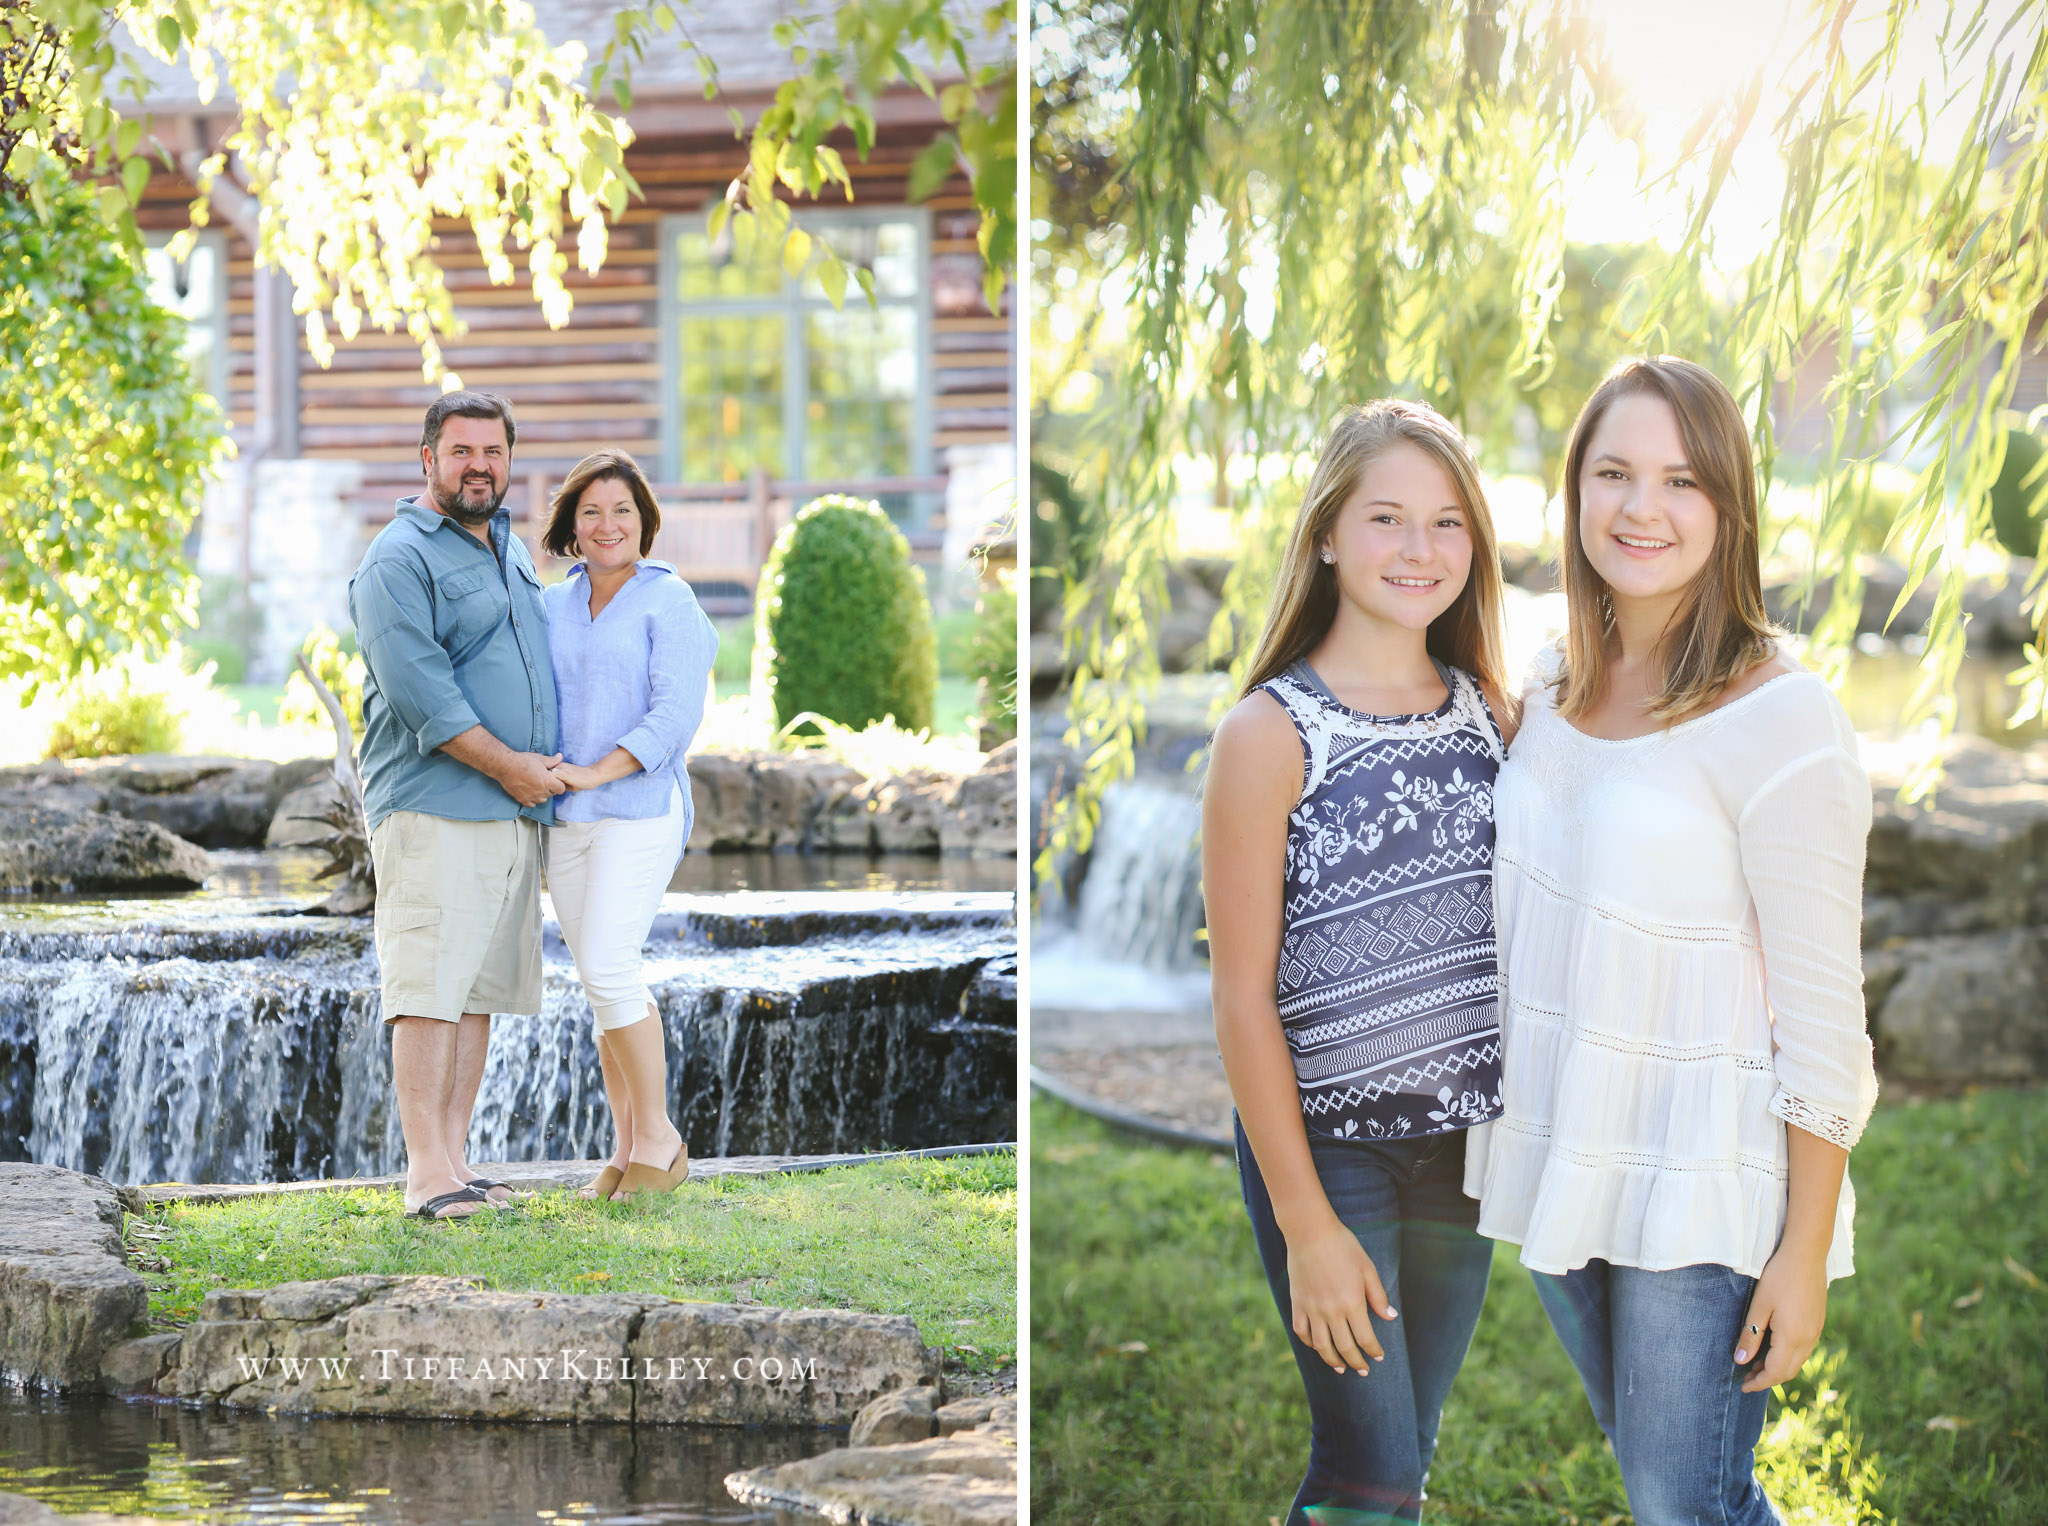 branson-missouri-family-portrait-photographer-tiffany-kelley-photography-03